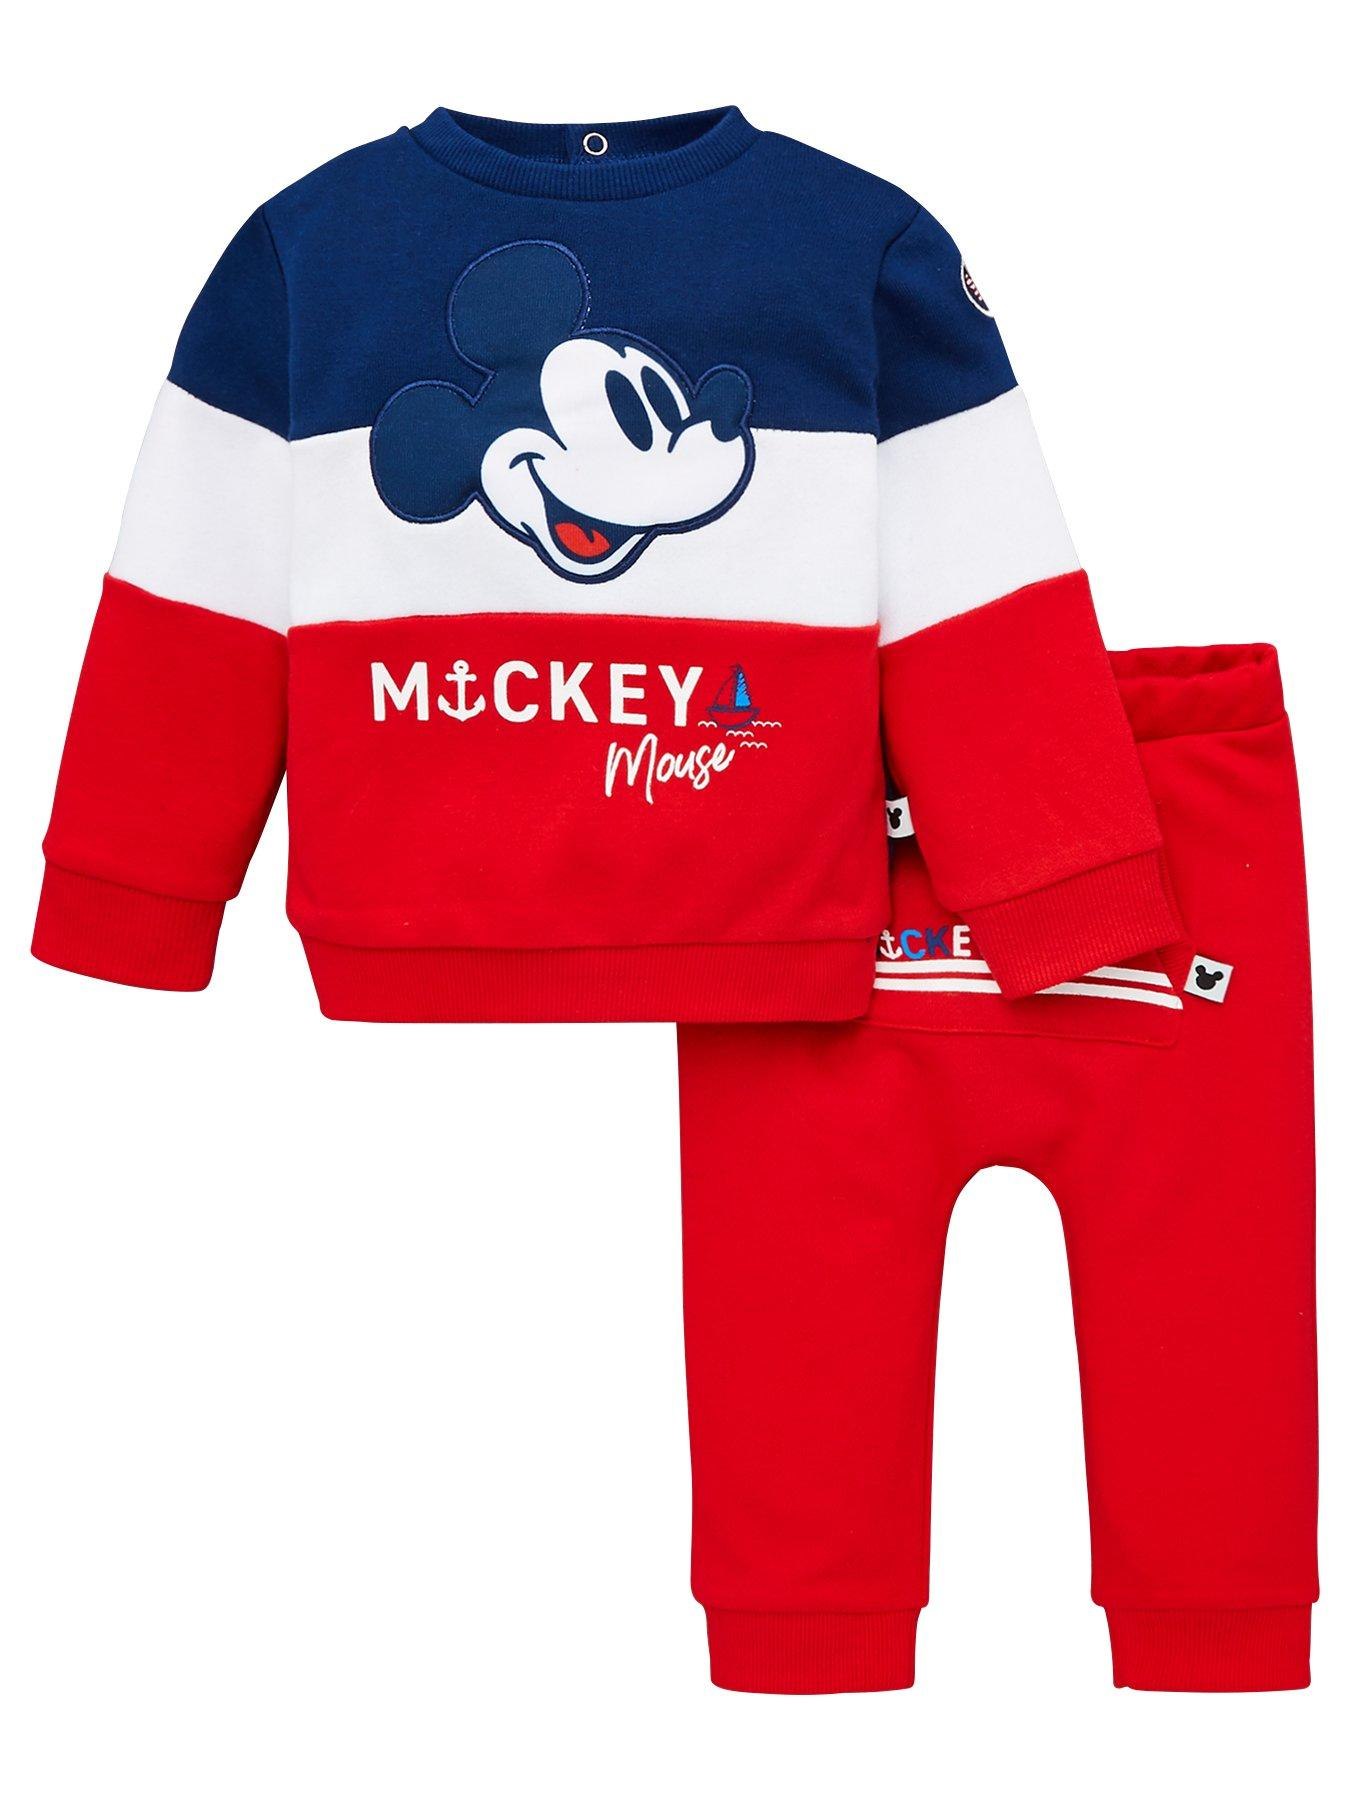 Boys Baby Toddler Disney Mickey Mouse Current Mood Pyjamas Sizes from 6 to 24 Months